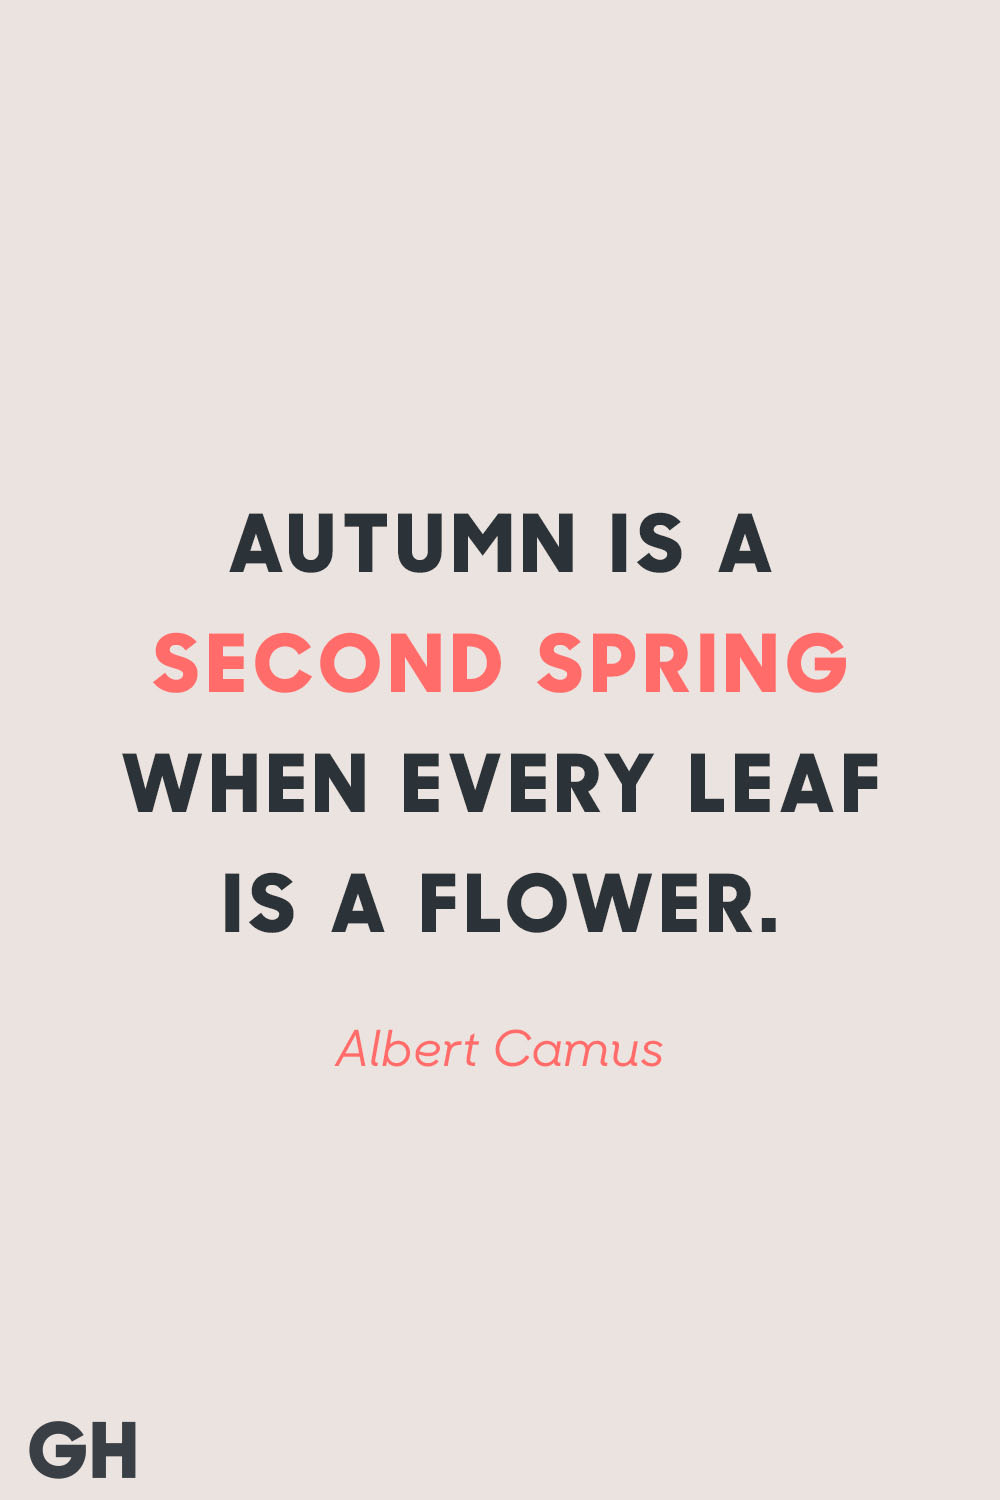 15 Best Fall Quotes - Sayings About Autumn